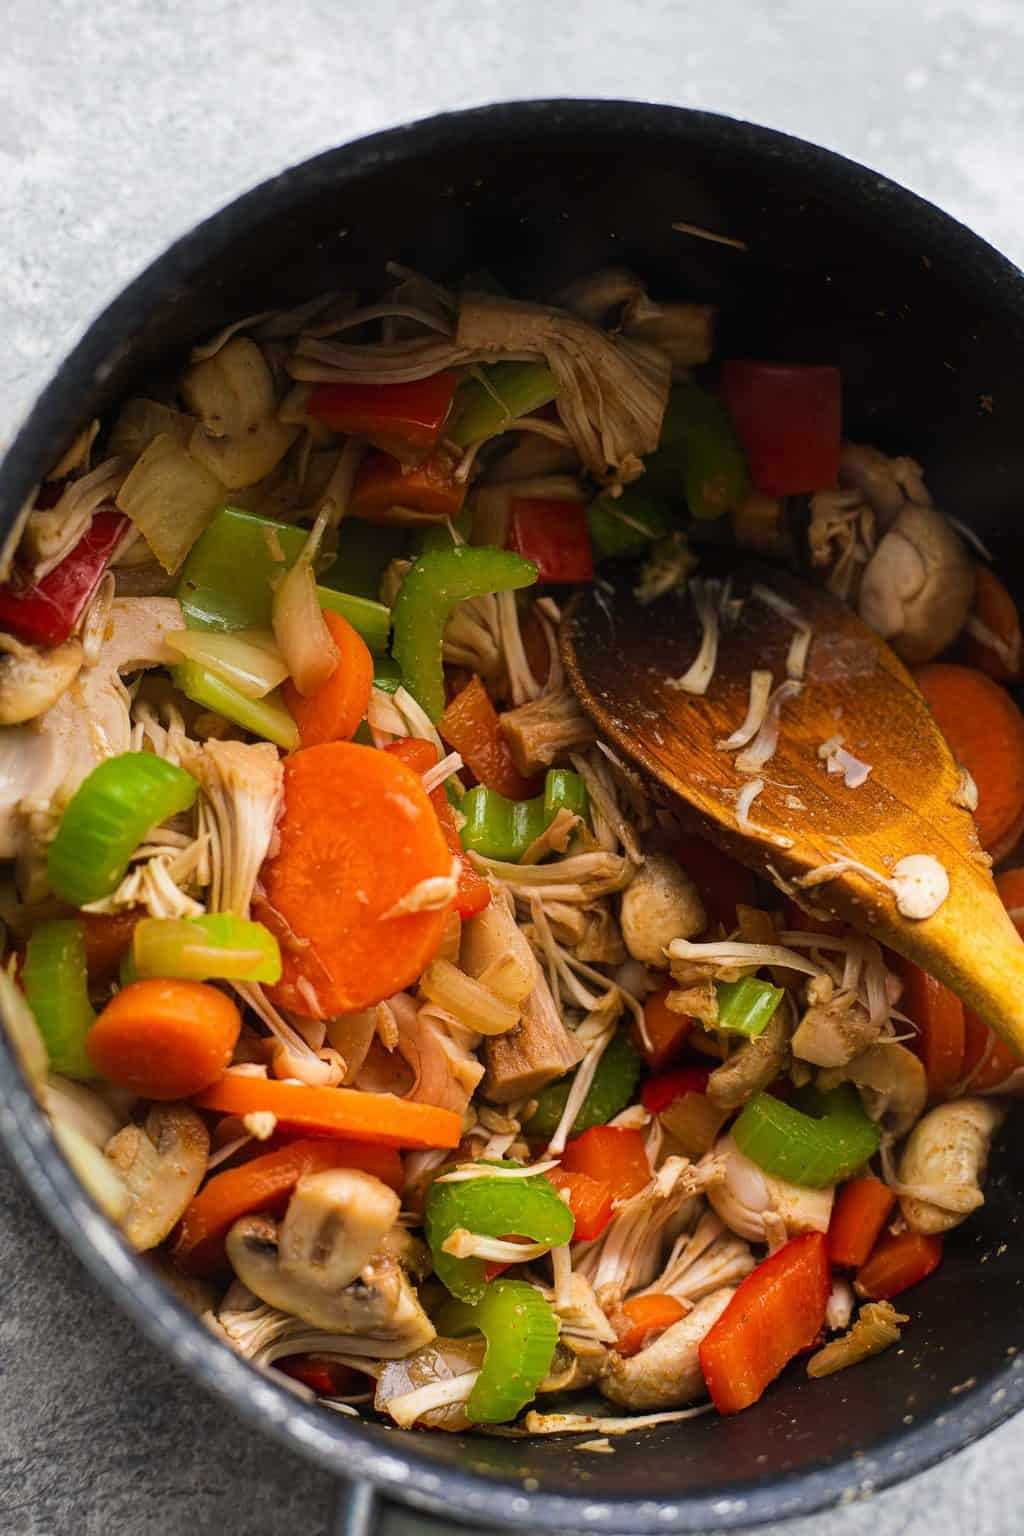 Vegetables and jackfruit in a saucepan